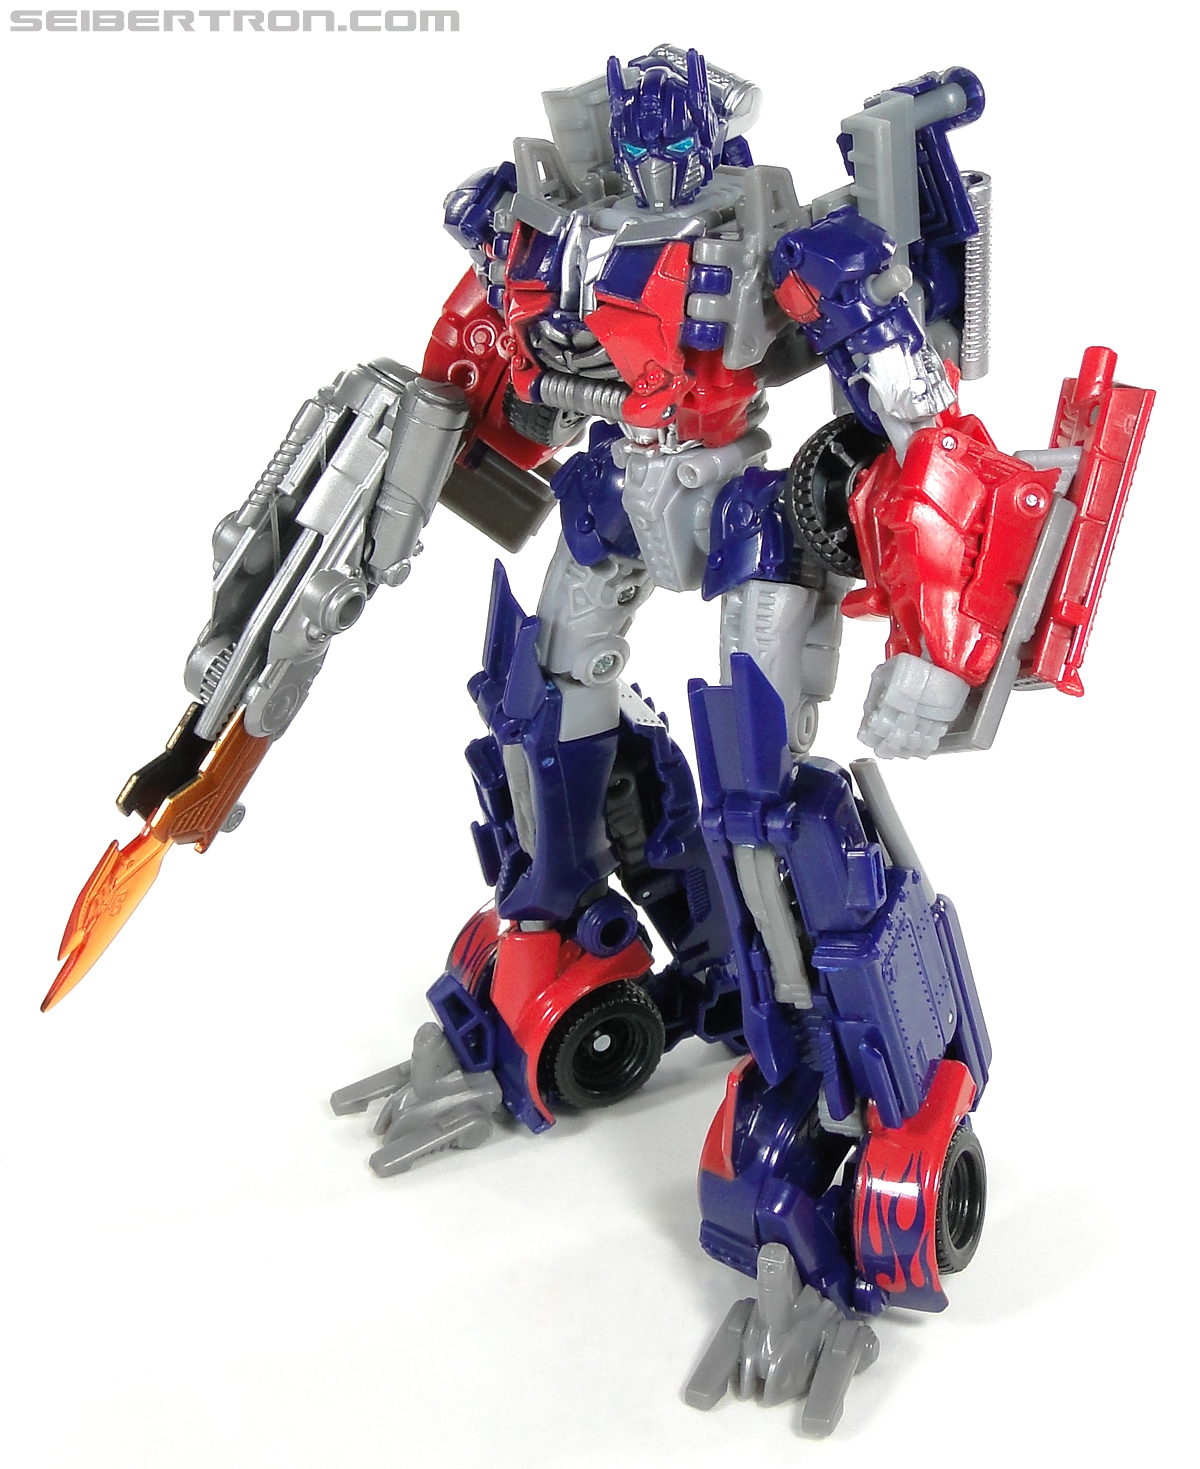 transformers dark of the moon optimus prime with mechtech trailer